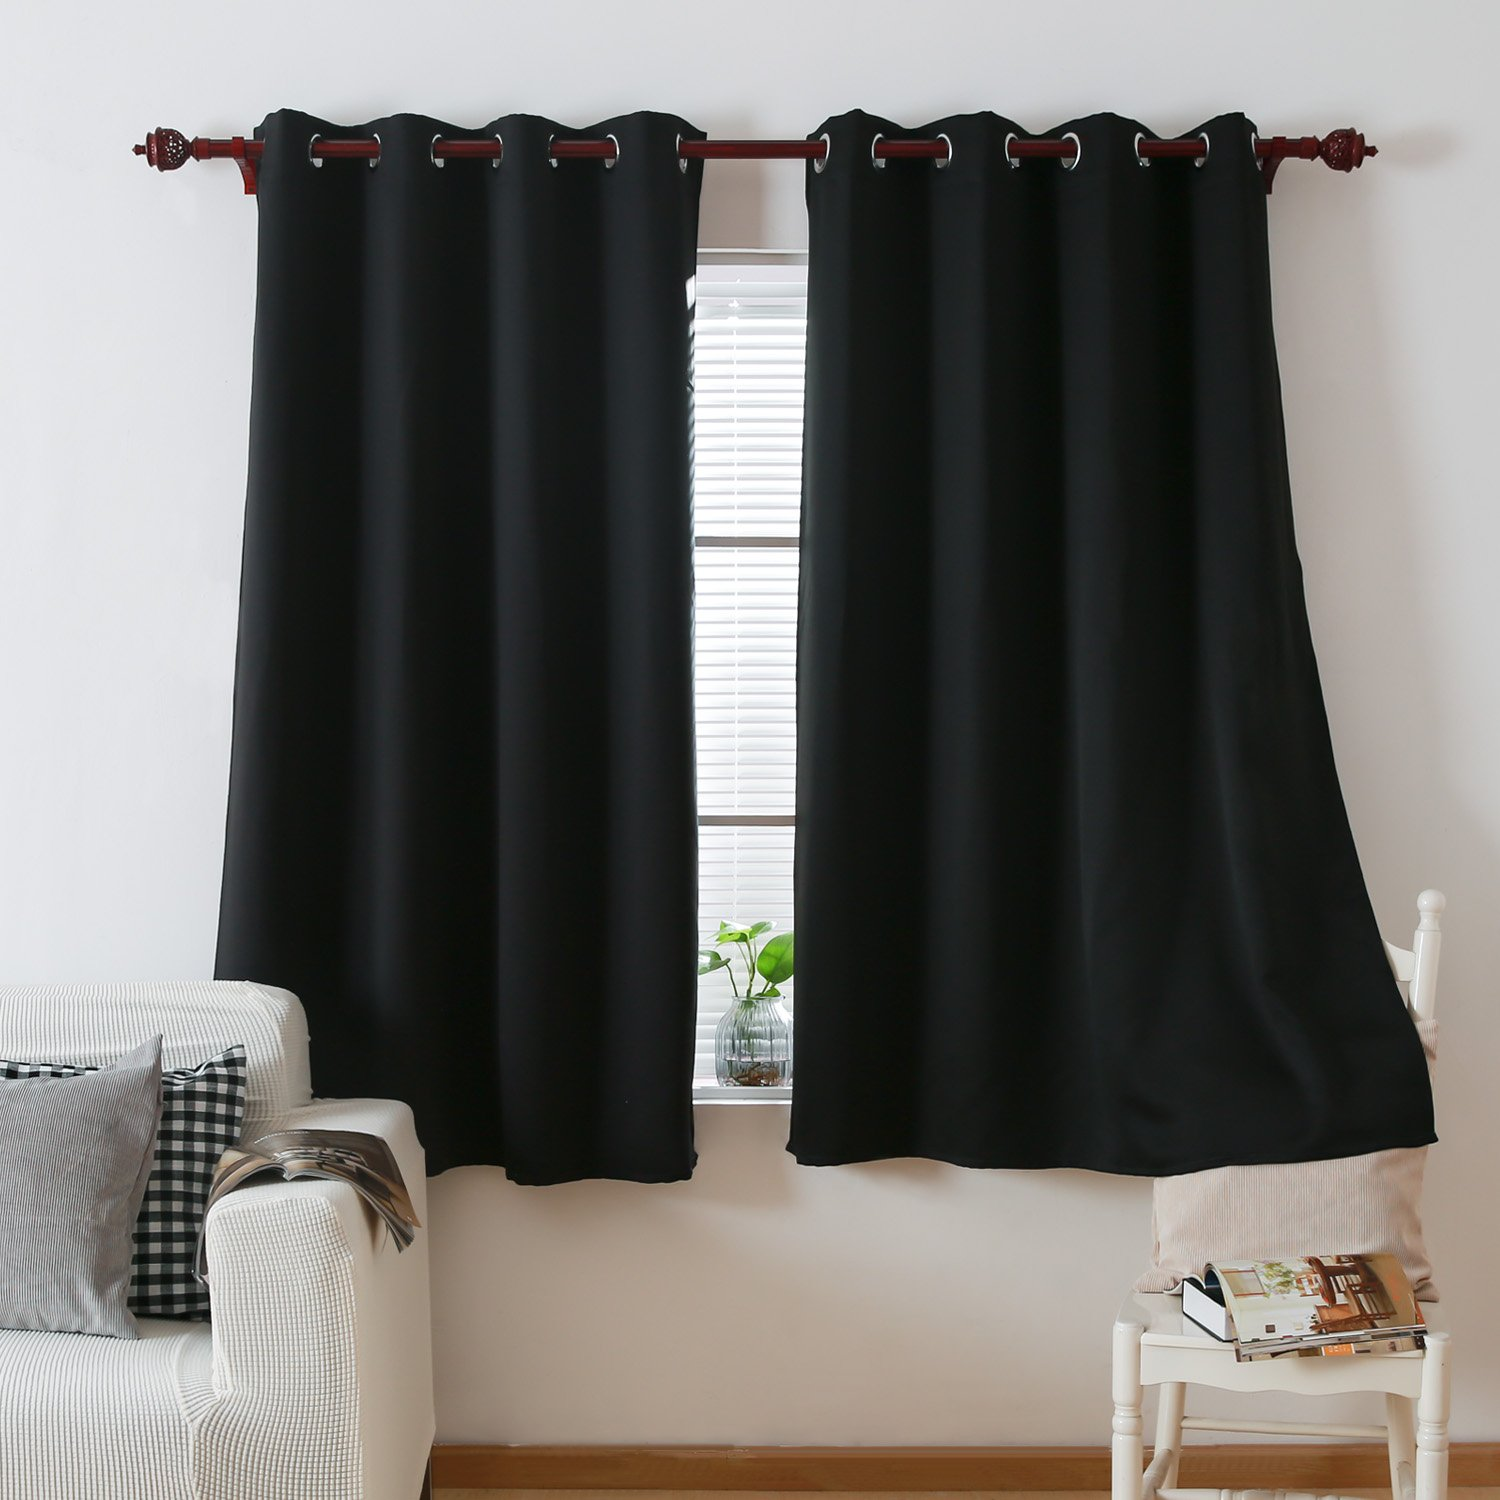 Deconovo Black Thermal Insulated Blackout Curtains 52 By 63 Inch,1 Panel